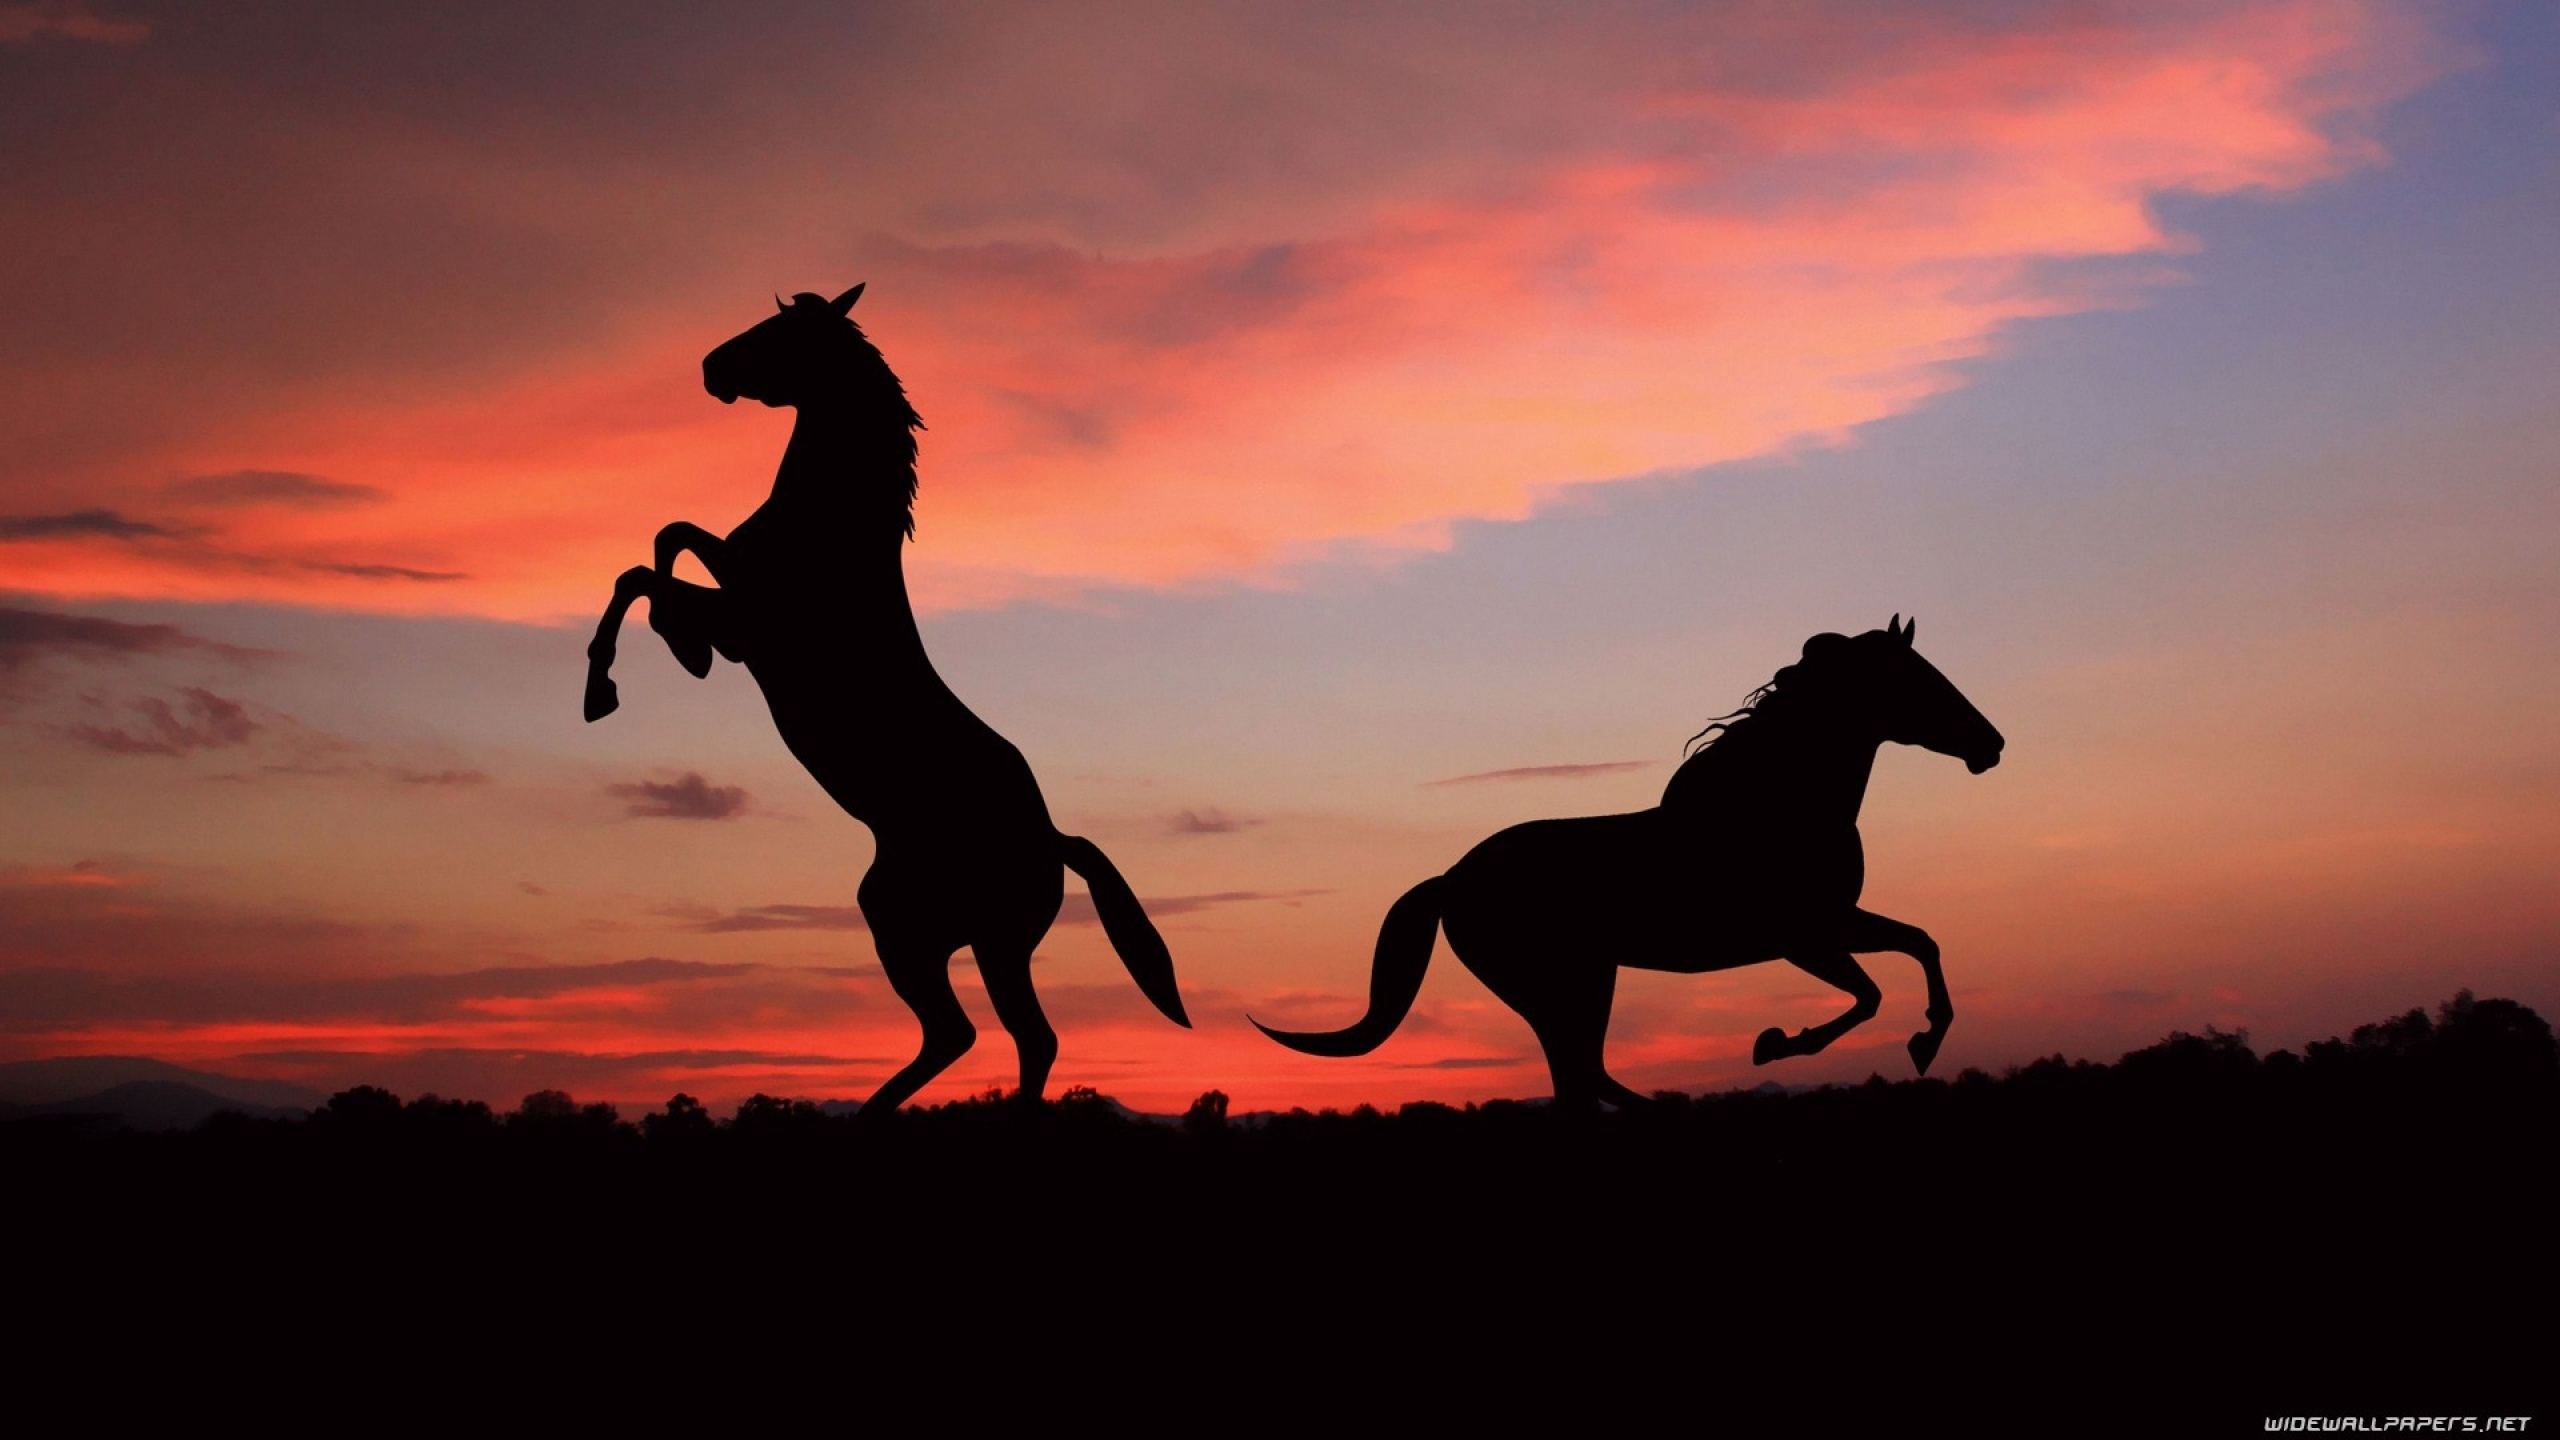 Top Wallpaper Horse Nature - tumblr_static_sunset_clouds_nature_animals_h_2560x1440_wallpaperhi  HD_84616.jpg